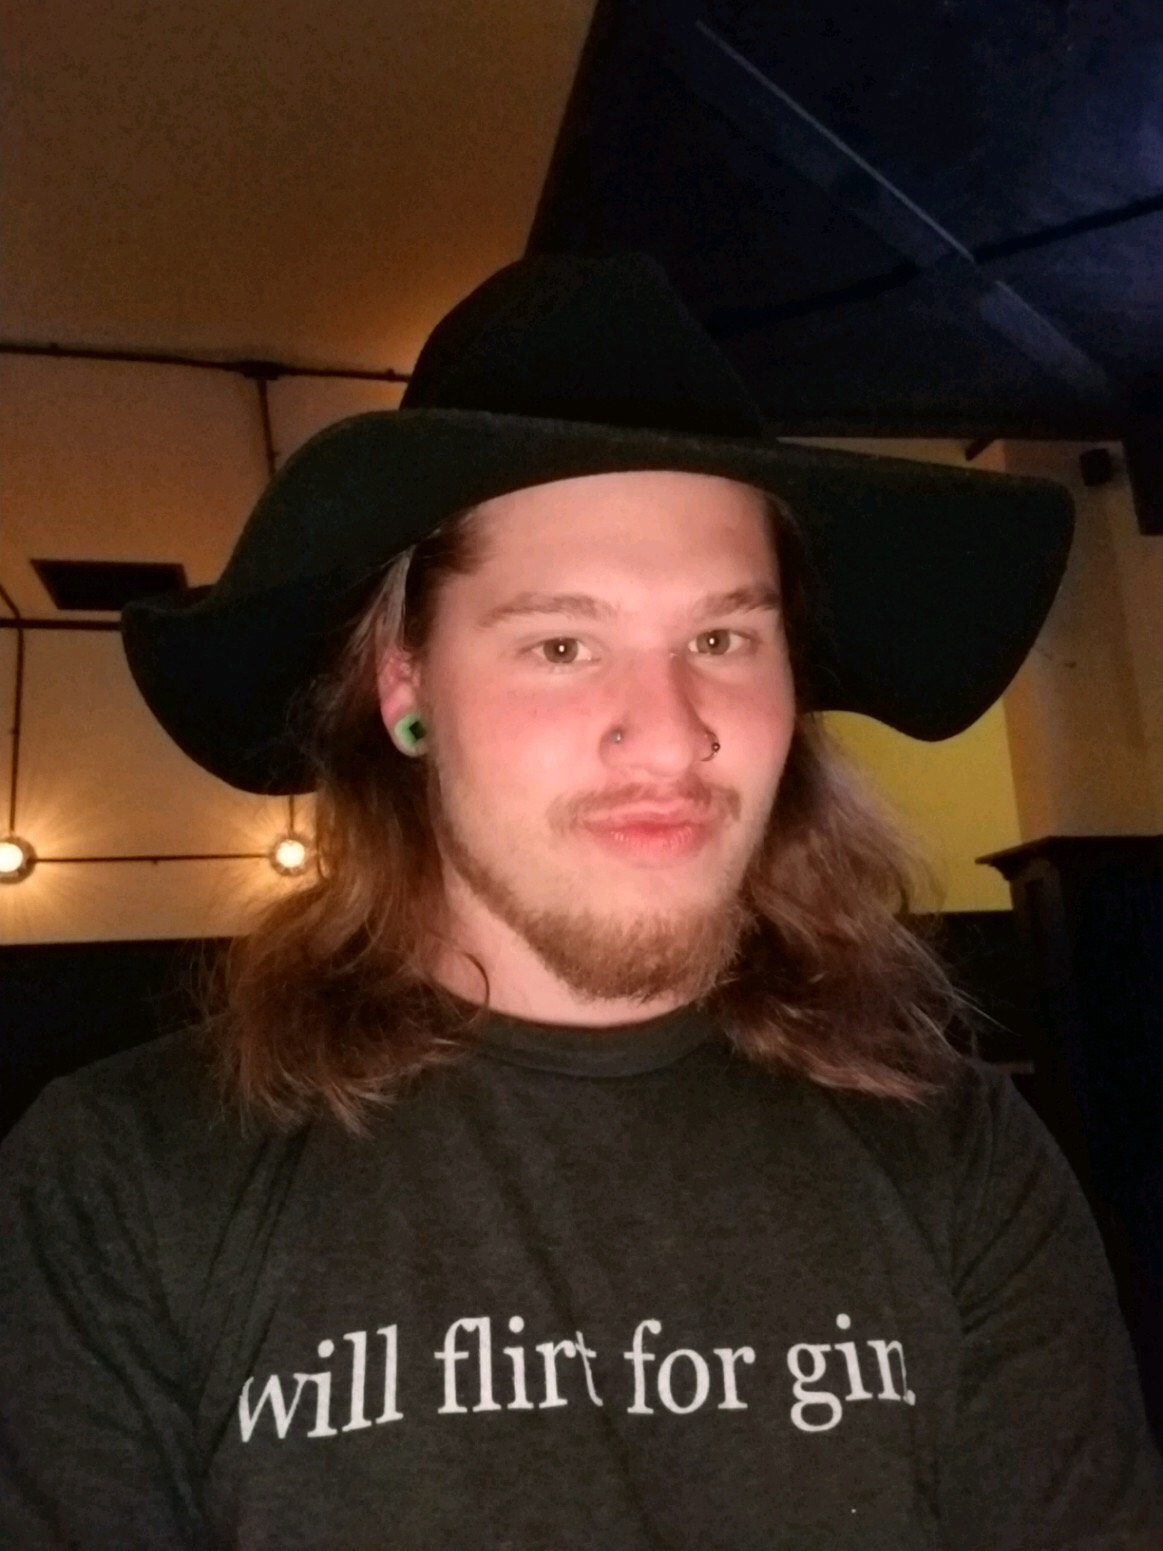 Colby Kress - Colby is our Beer Buyer and also serves up mad cocktails at our sister business Bittersweet. He's way goofy, dances a lot, and is super charismatic! A fan of bright colors and fun hats, this guy keeps our Beer shelves well-stocked and unique!